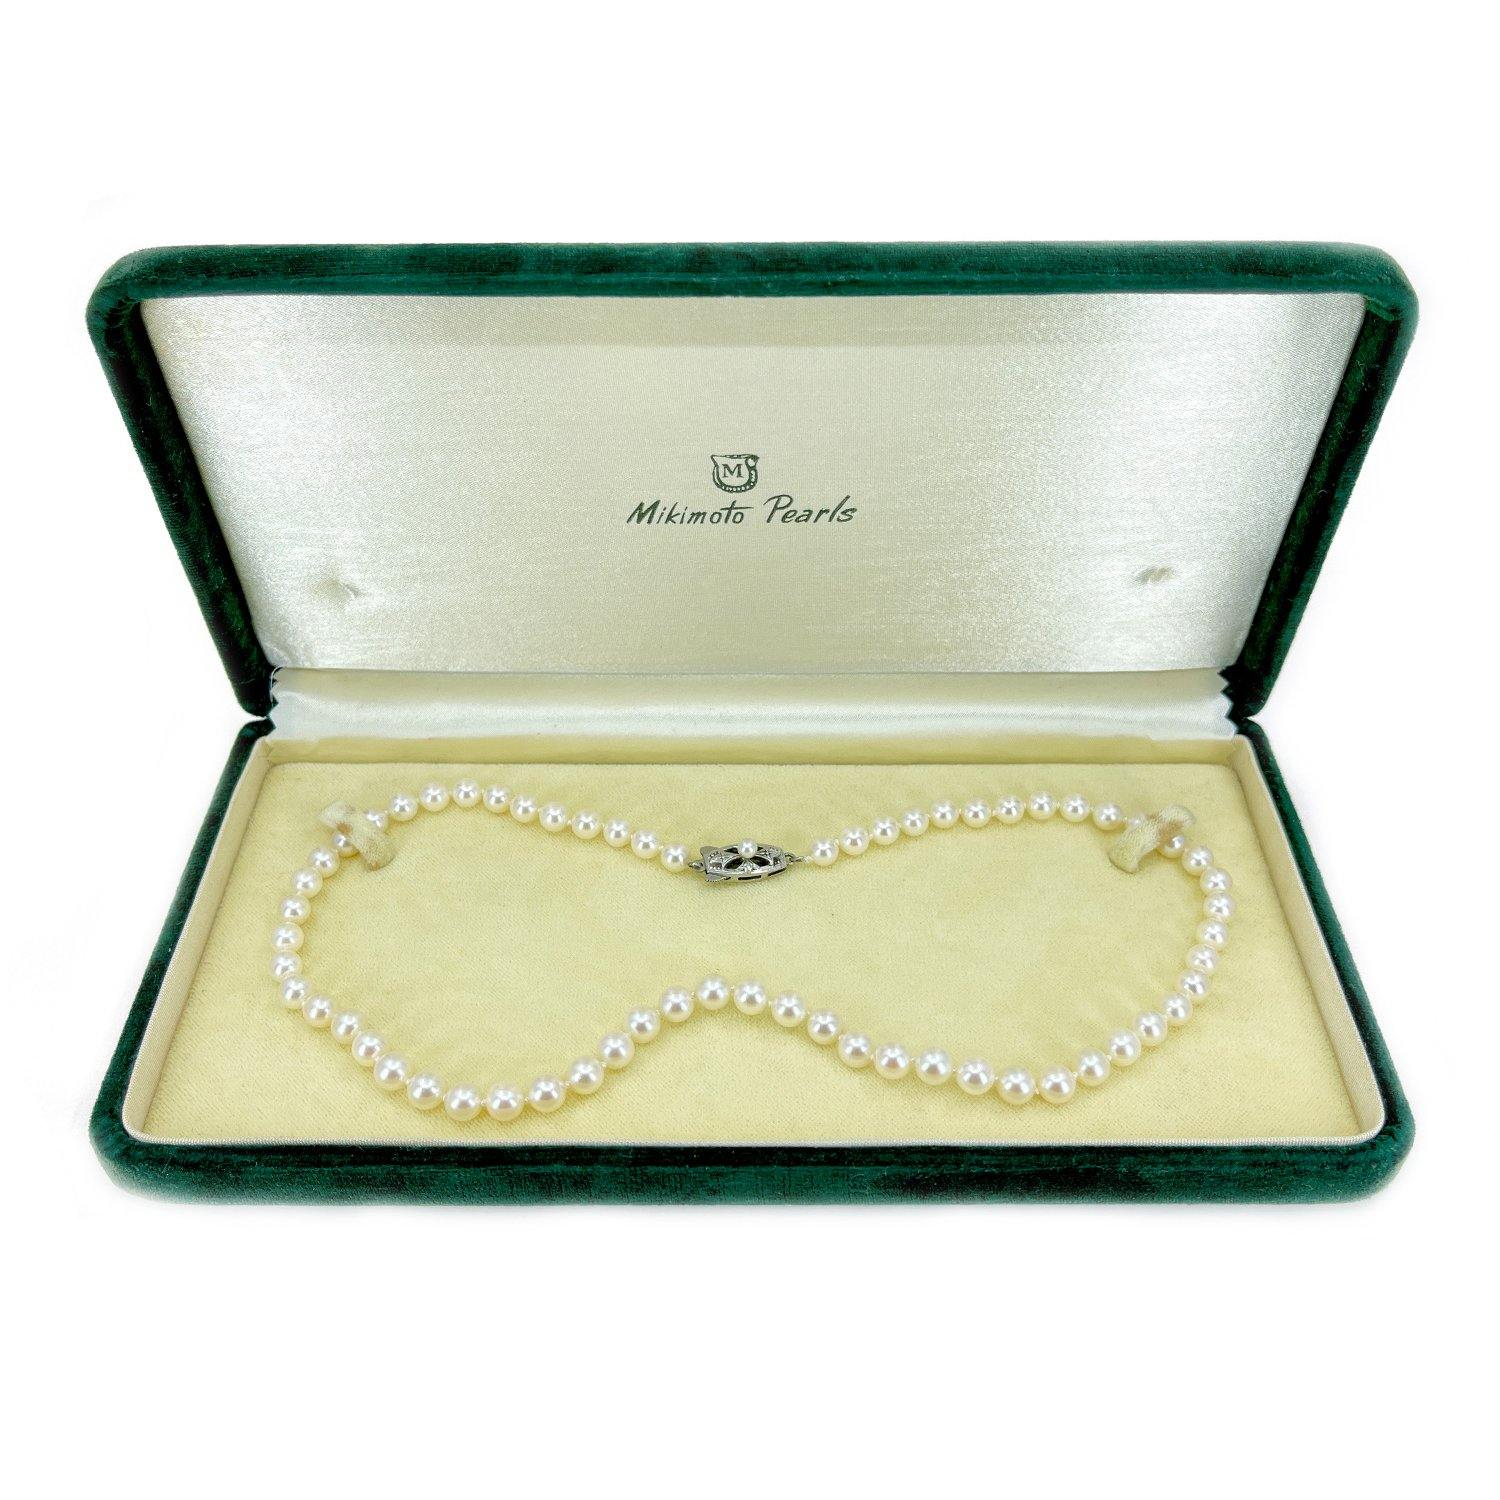 Mikimoto Japanese Cultured Akoya Pearl Strand With Box - Sterling Silver 16 Inch